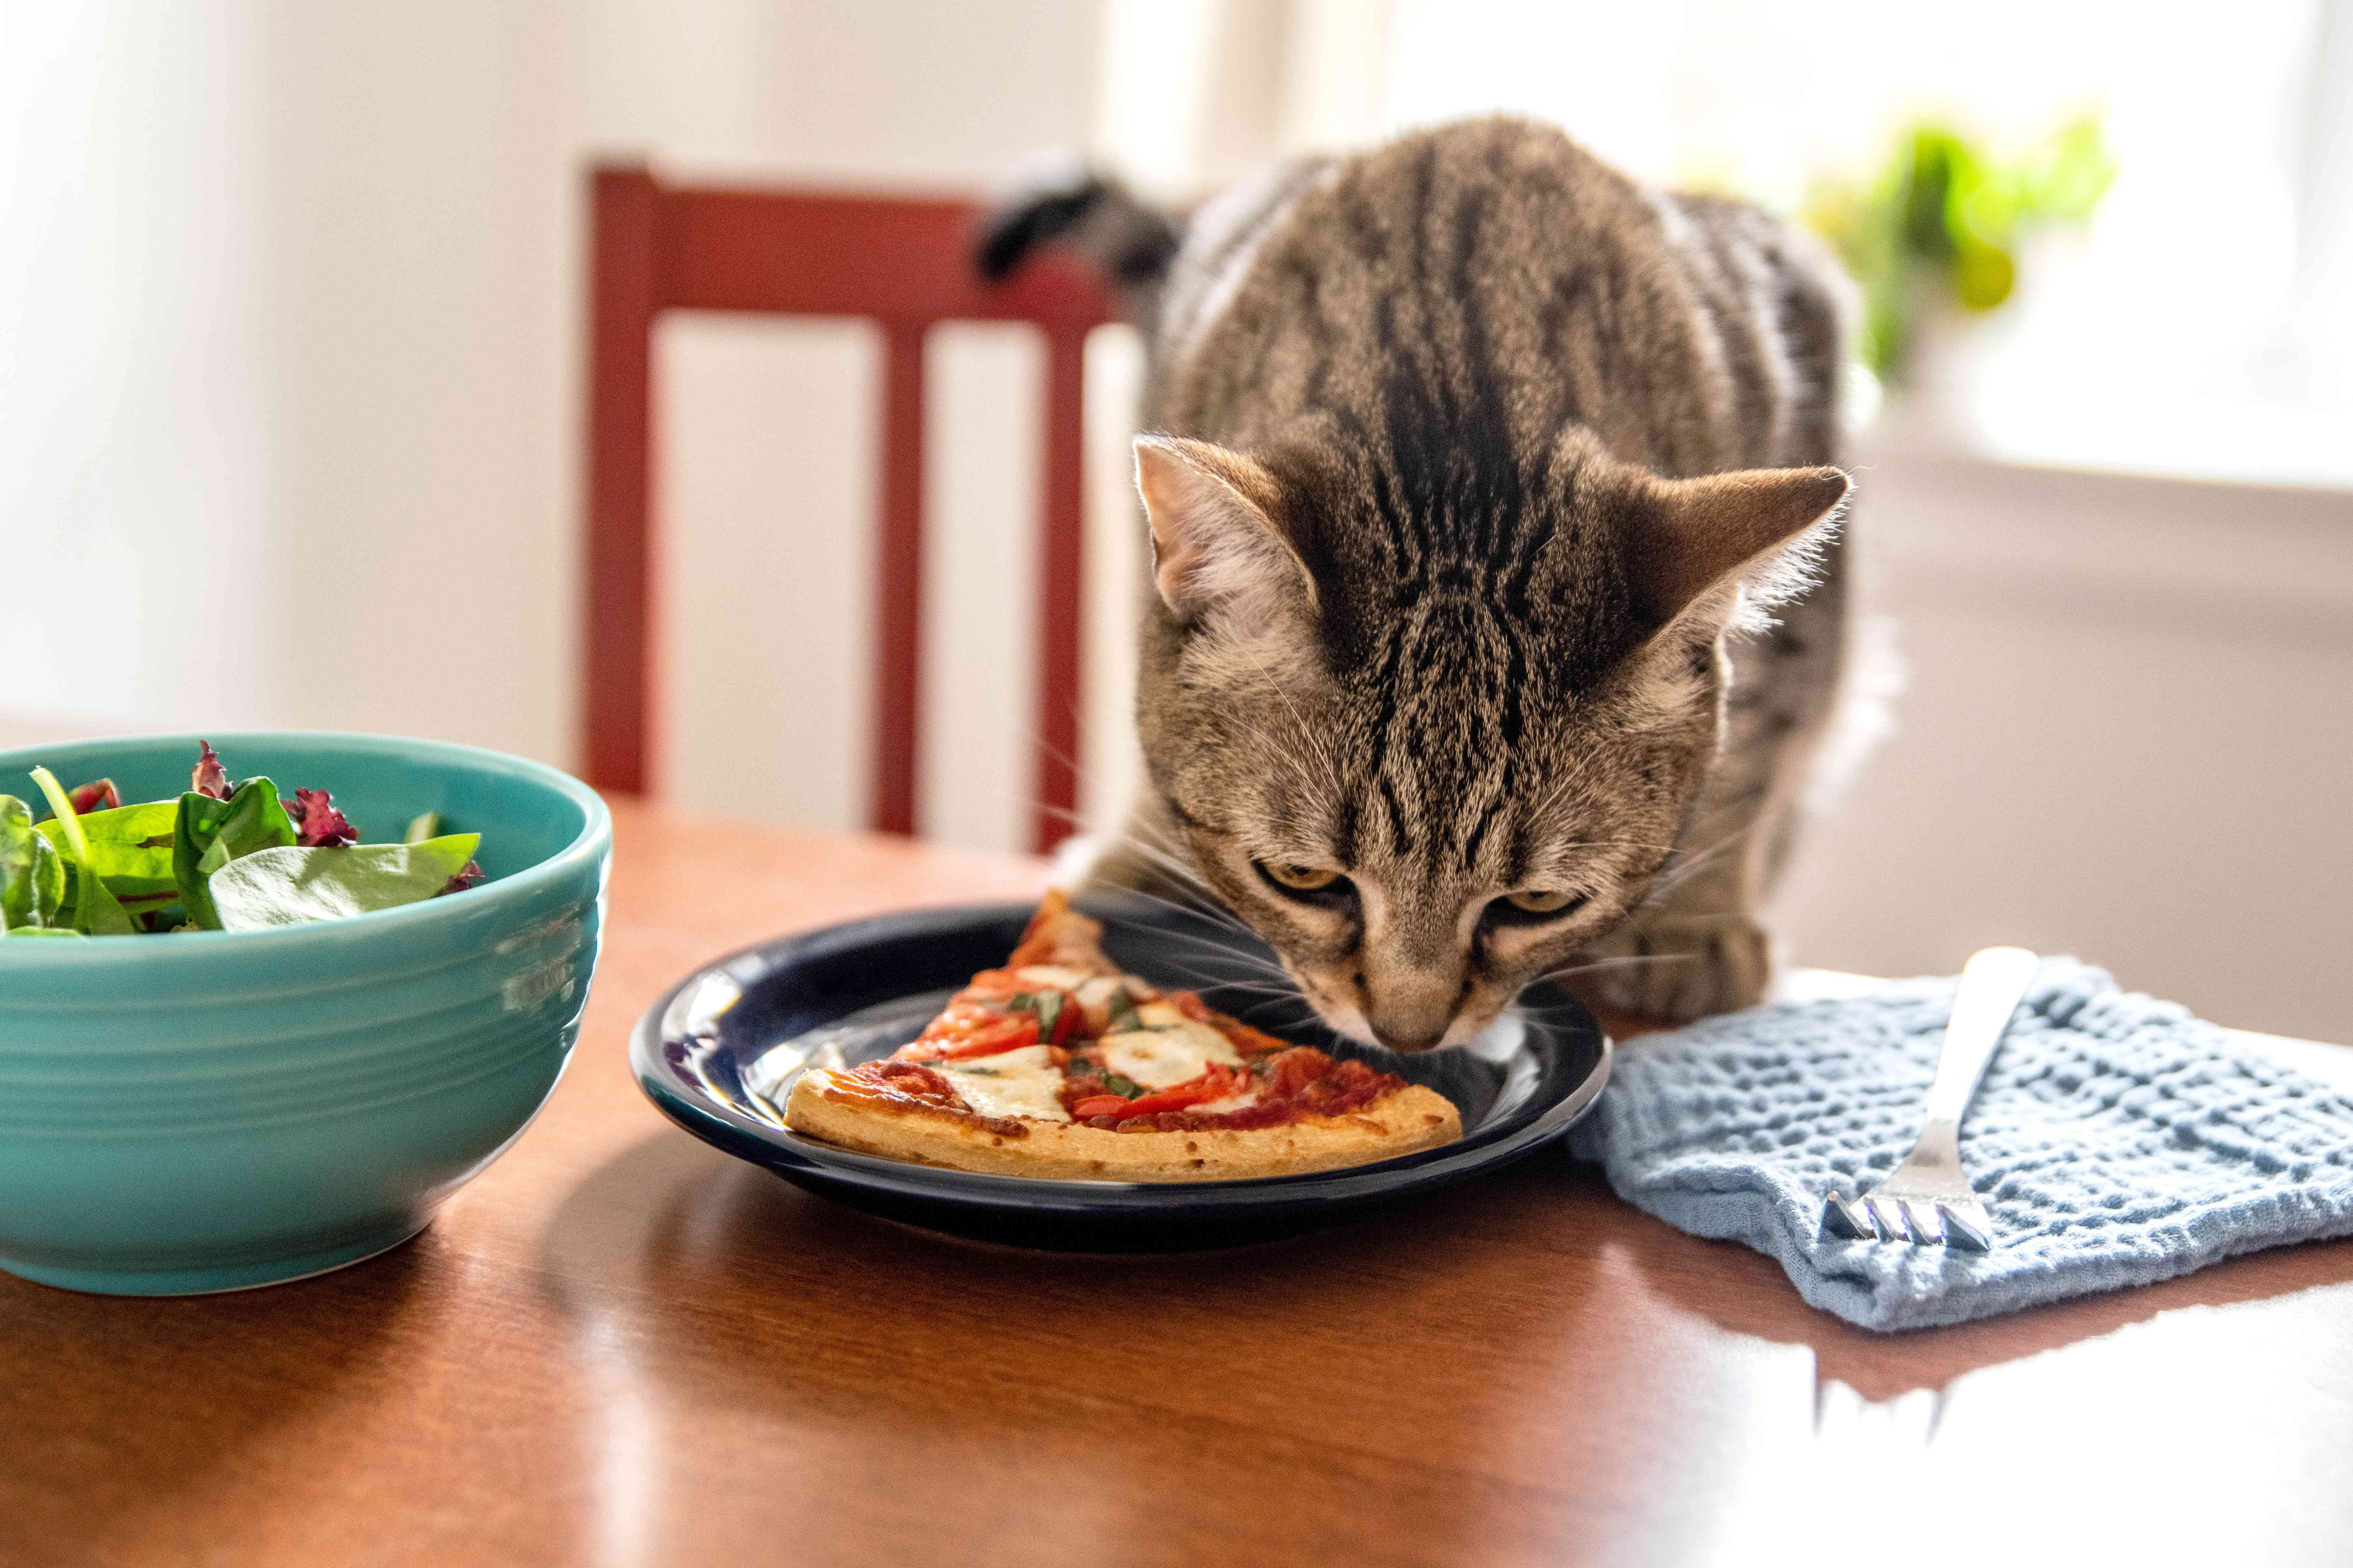 Brown cat sniffing slice of pizza on black plate next to silverware and salad bowl